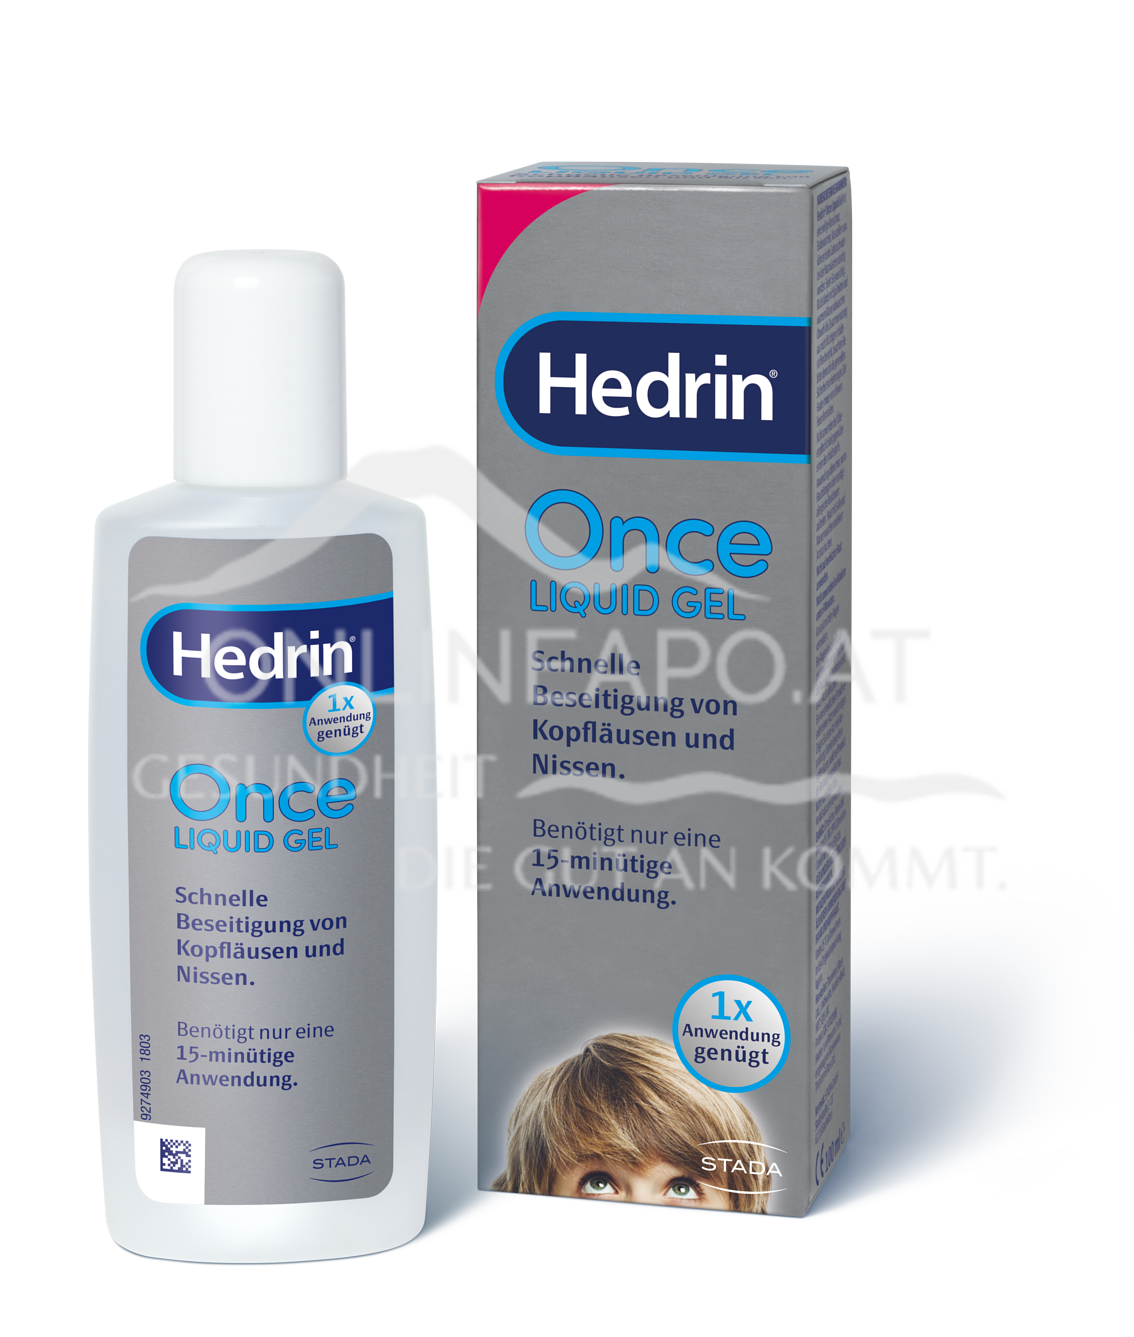 Hedrin® Once Liquid Gel